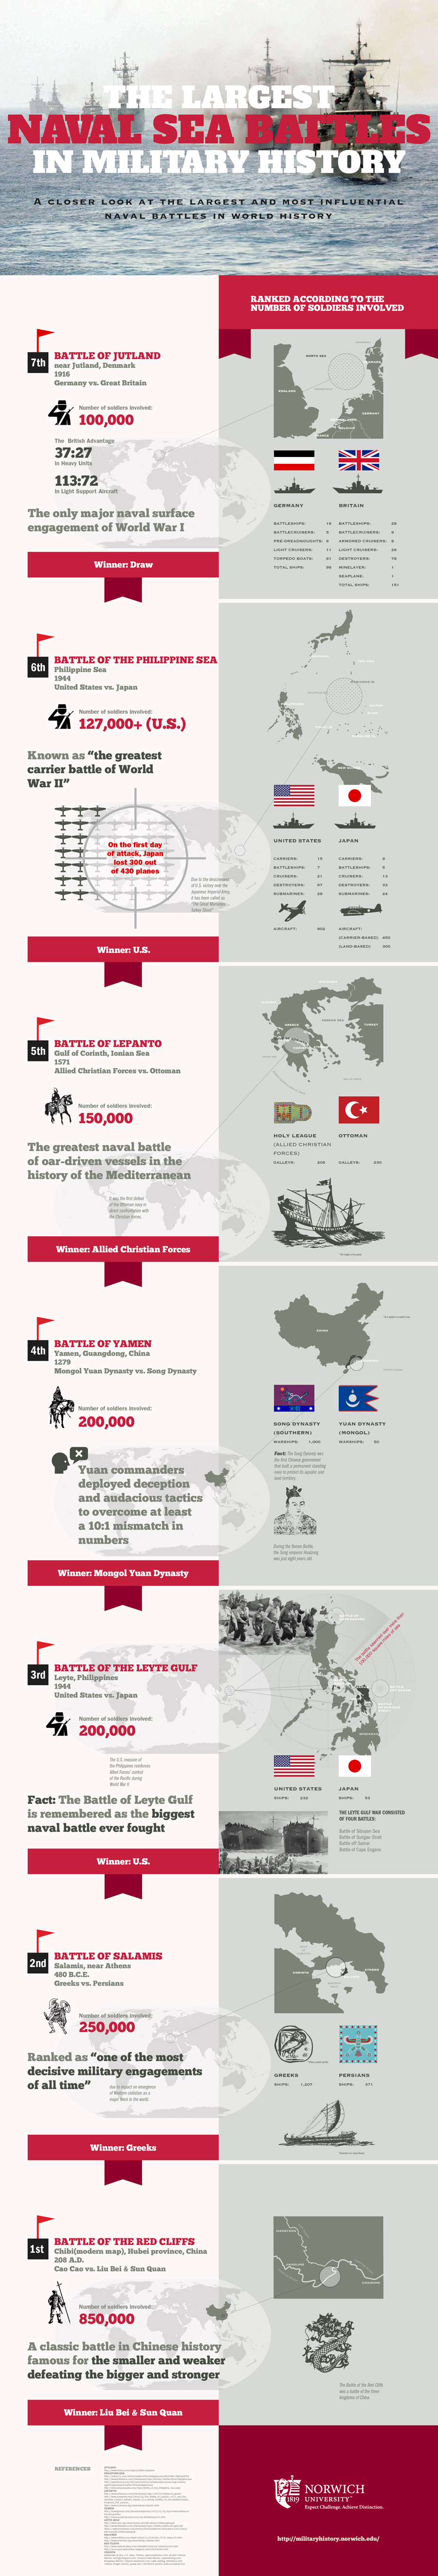 Largest Naval Battles